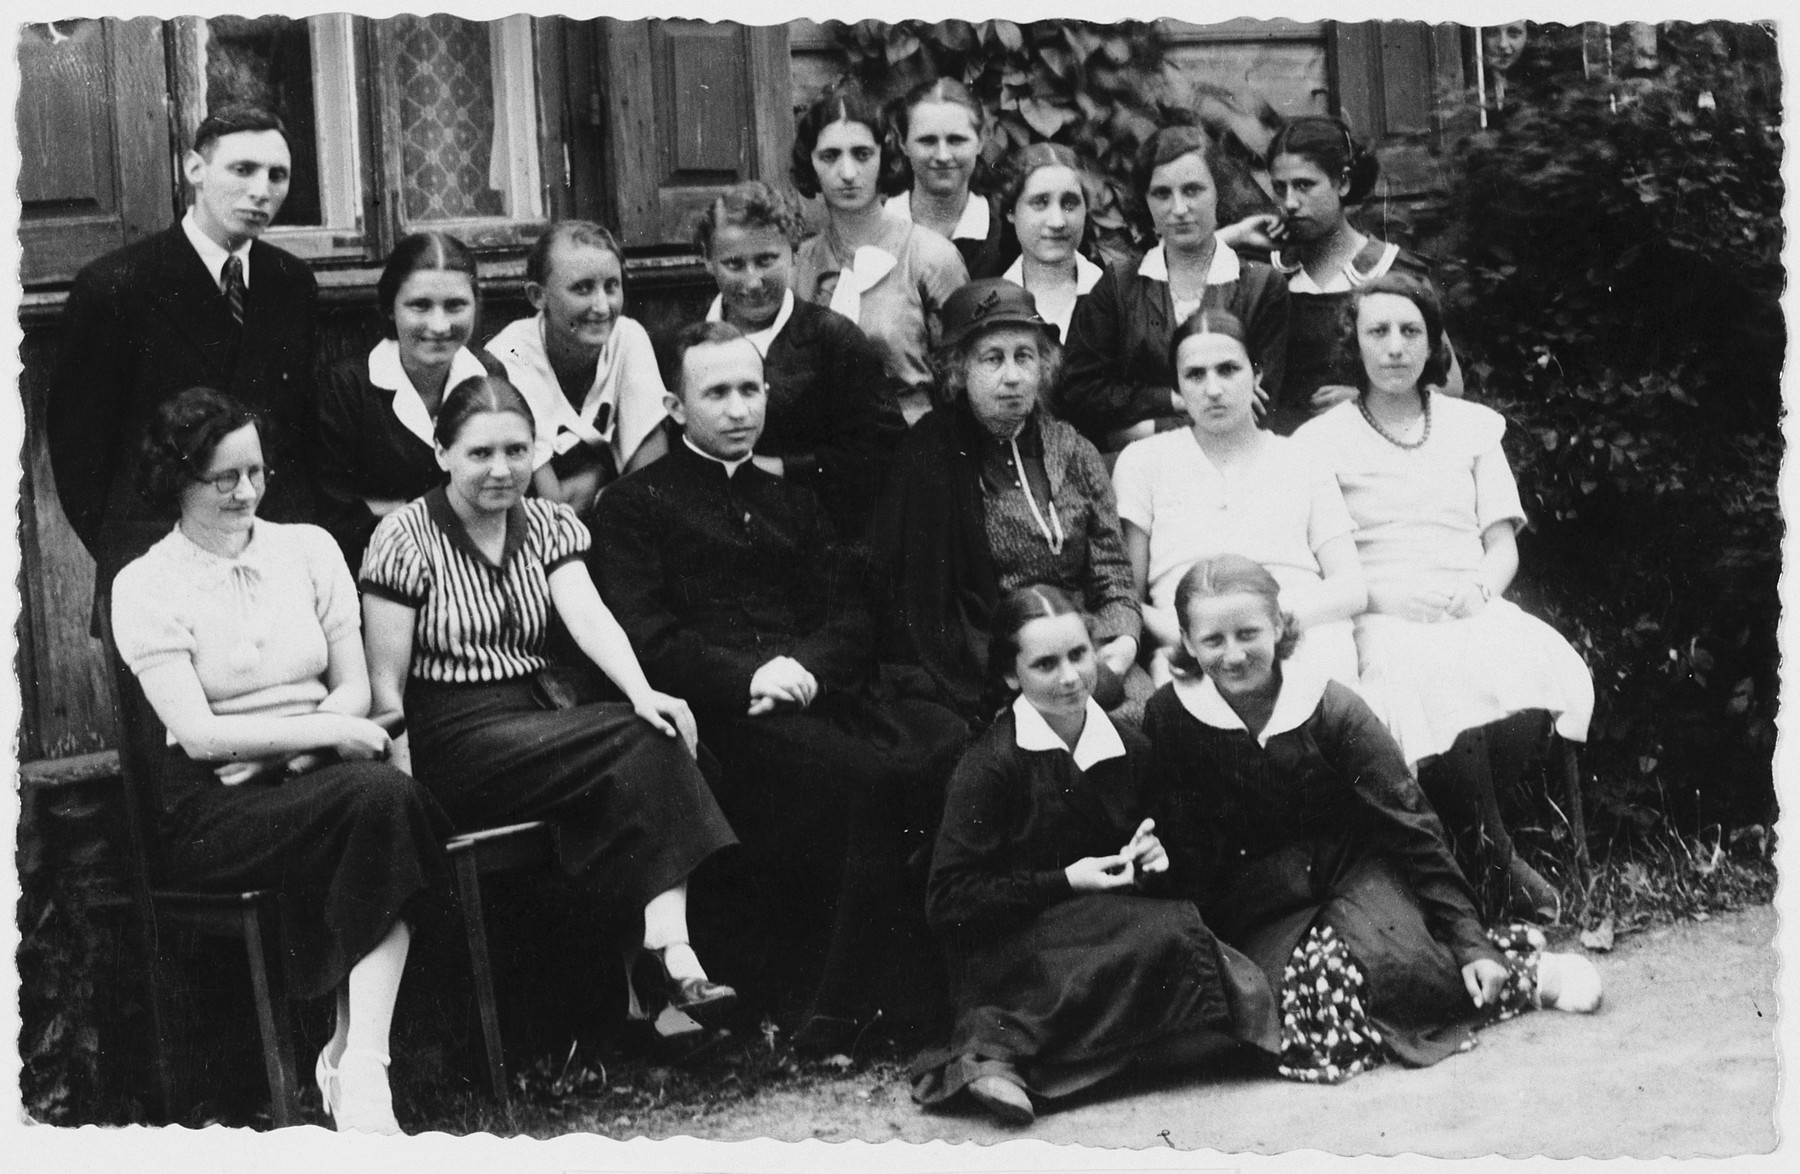 Group portrait of Polish and Jewish students and their teachers at a gymnasium in Lukow, Poland.  Among those pictured is Zophia Szlendak (front row, left) and Jadzia Dzido.  During the German occupation both girls joined the resistance. Zophia was subsequently killed by the Gestapo.